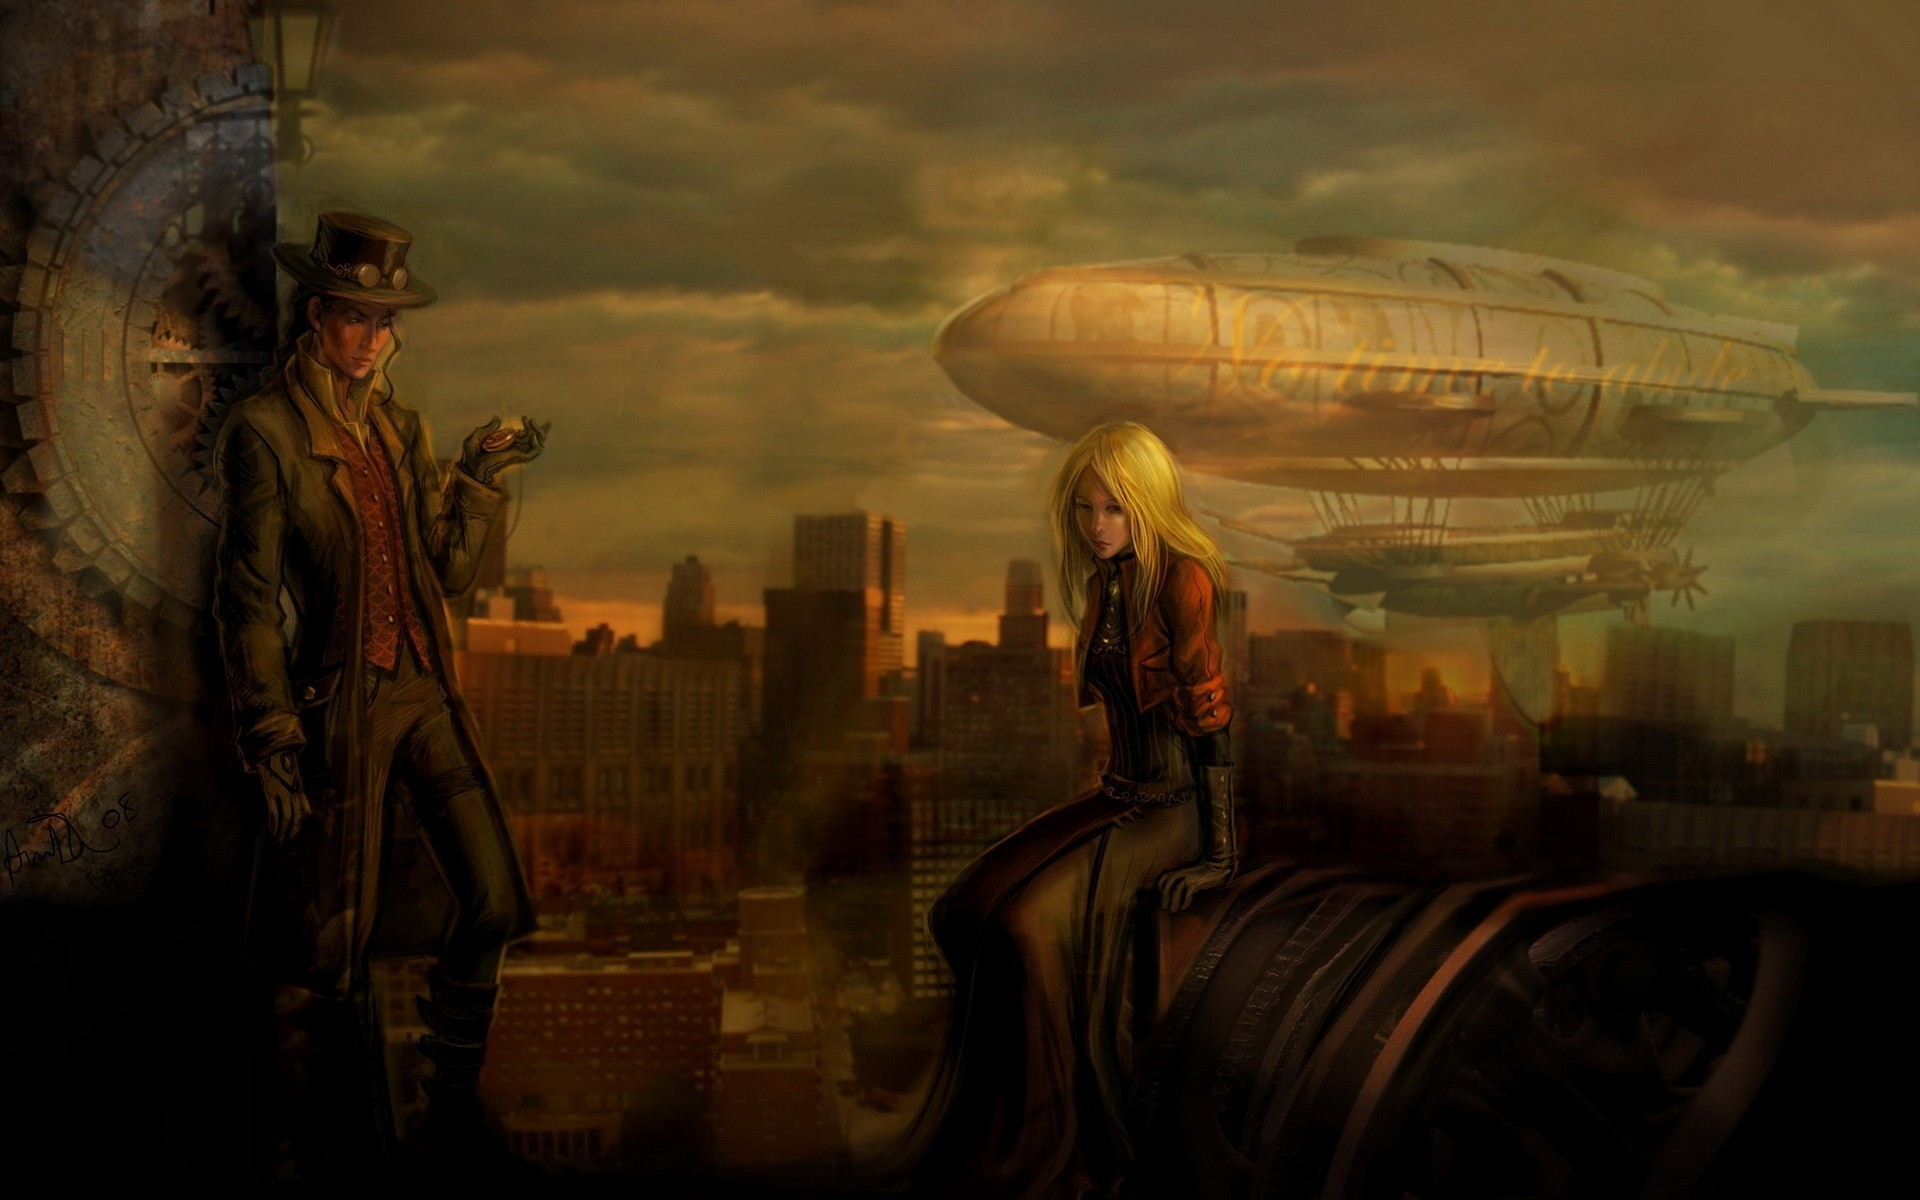 blondes woman steampunk artwork HD Wallpaper